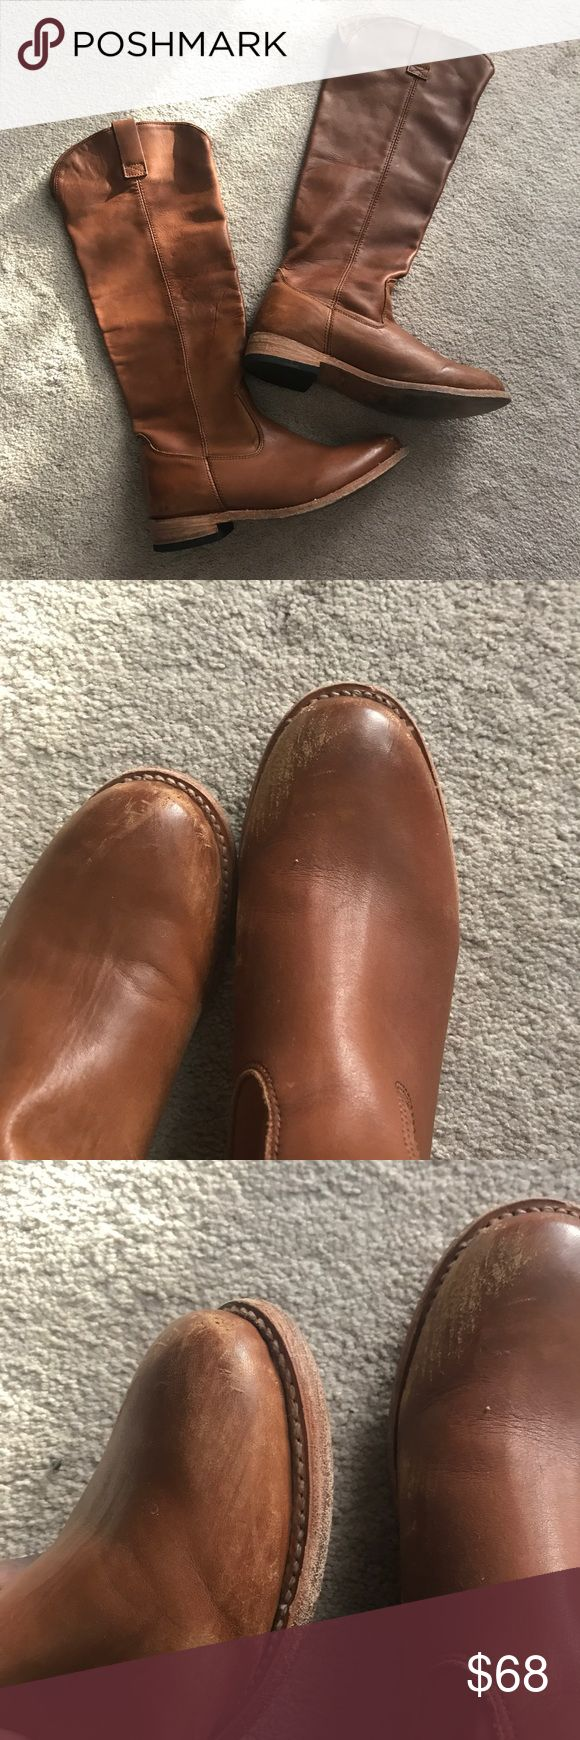 Cognac Riding Boots Great Quality! It feels like real leather but I'm not defiantly sure. Has some wear(see pictures) Shoes